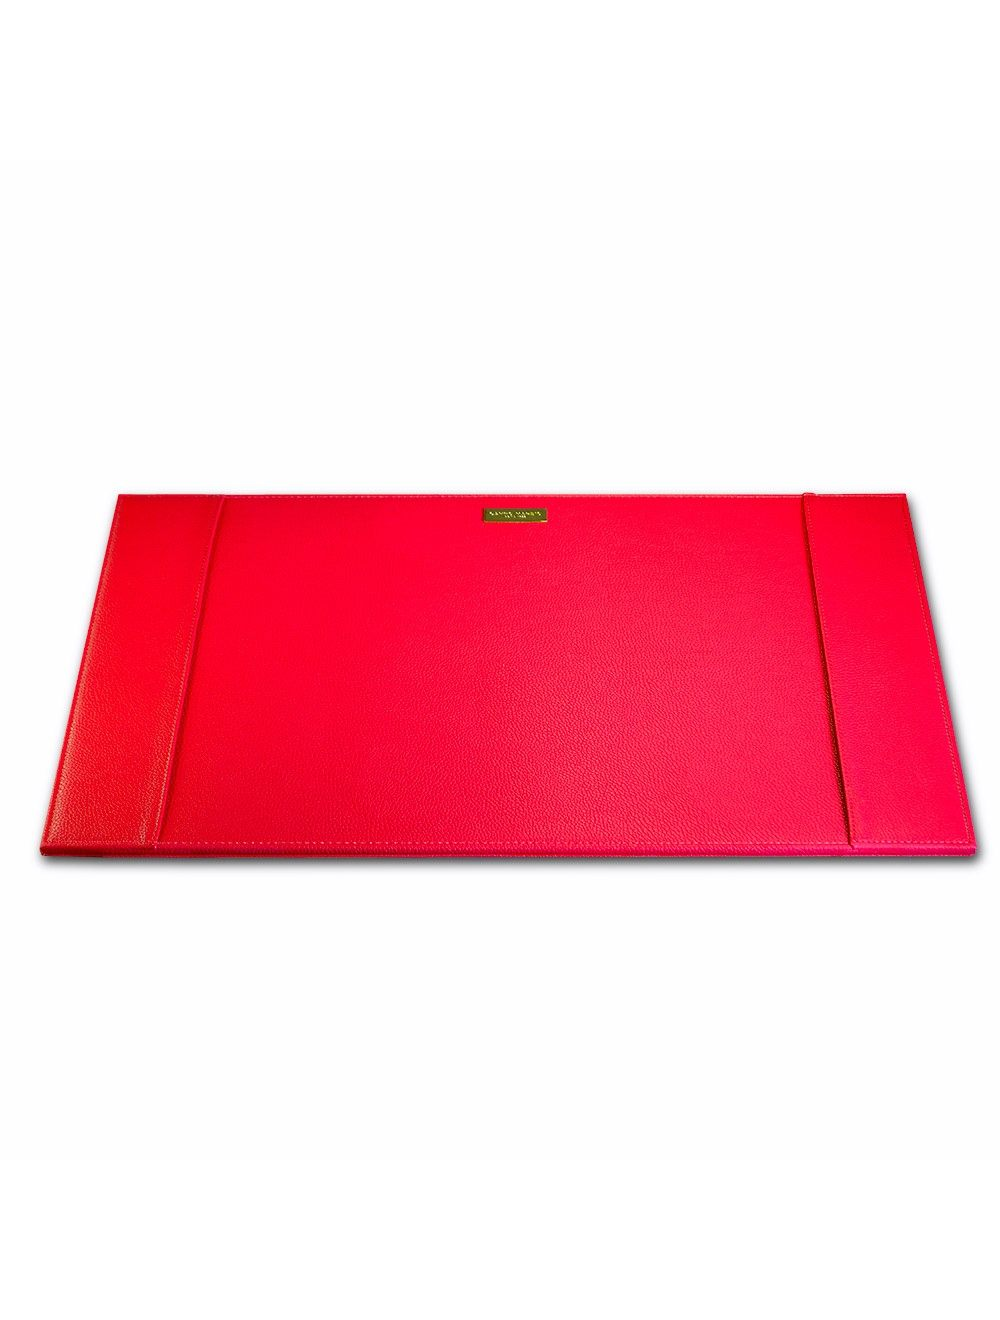 Desk Pad Metal Plate - Cherry Red